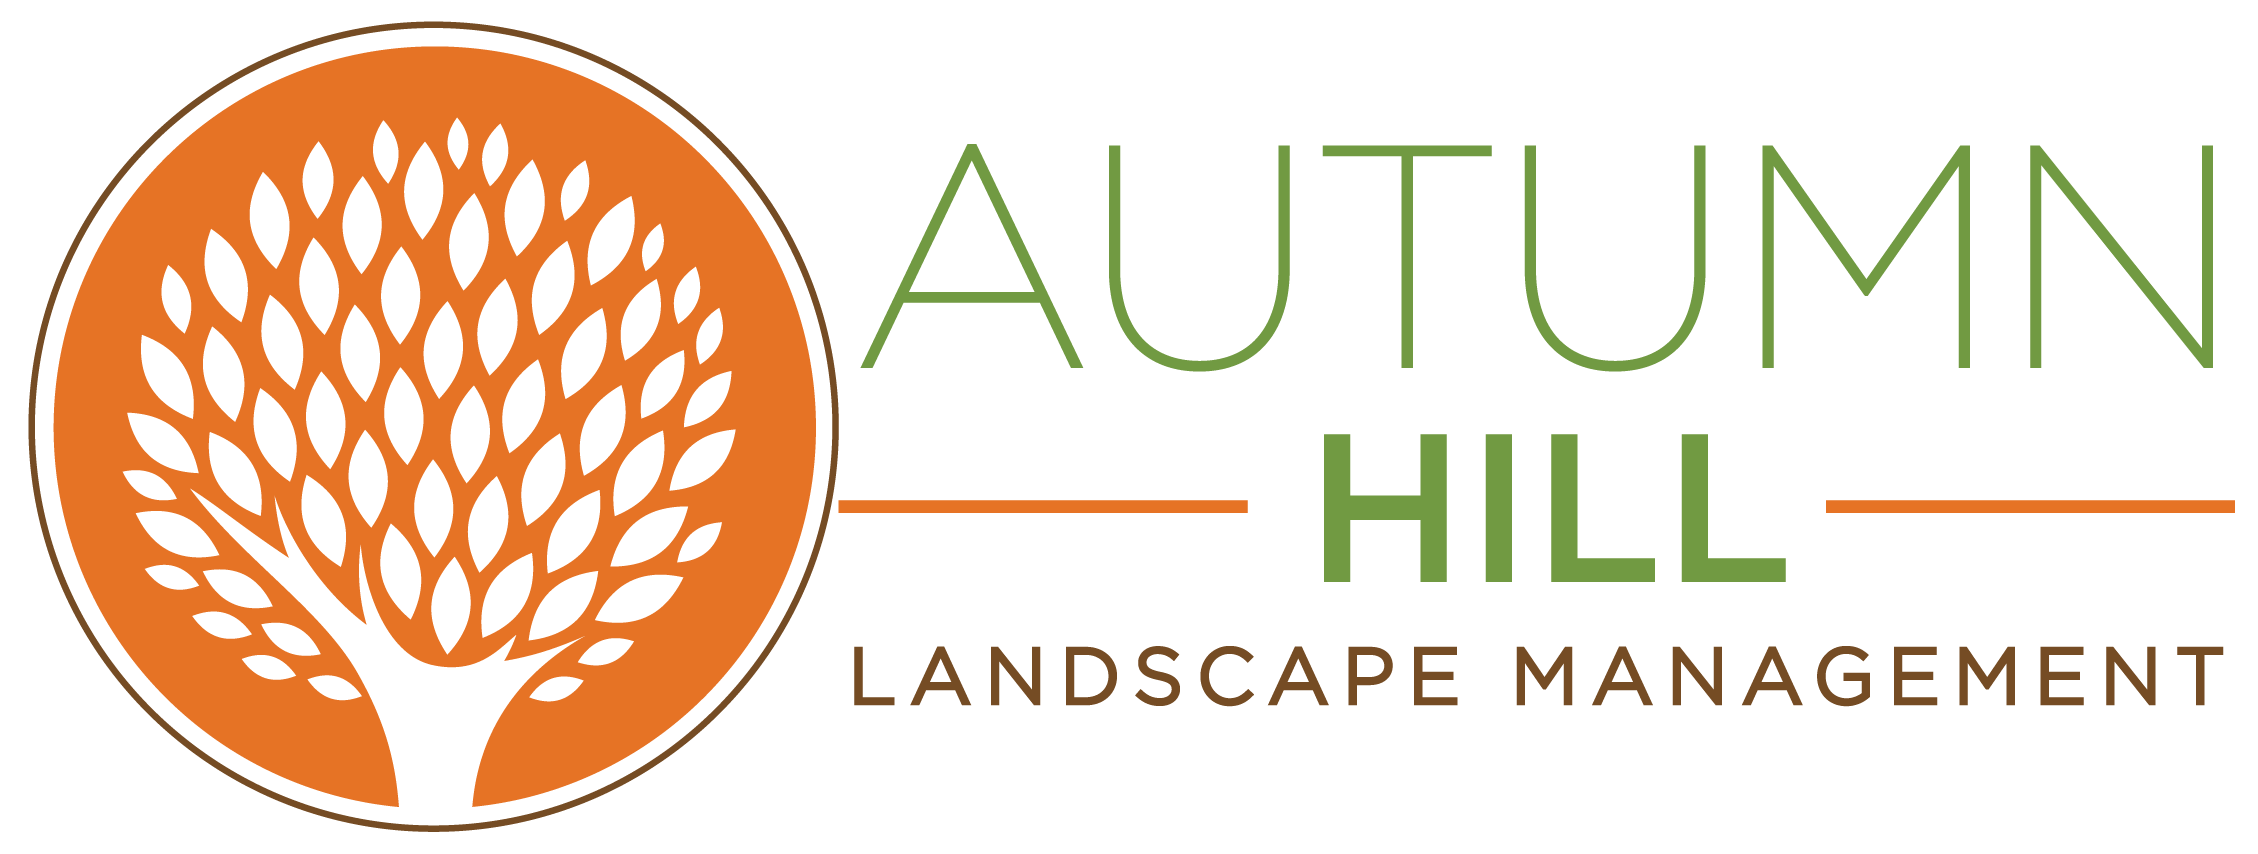 Autumn Hill Landscaping Inc.